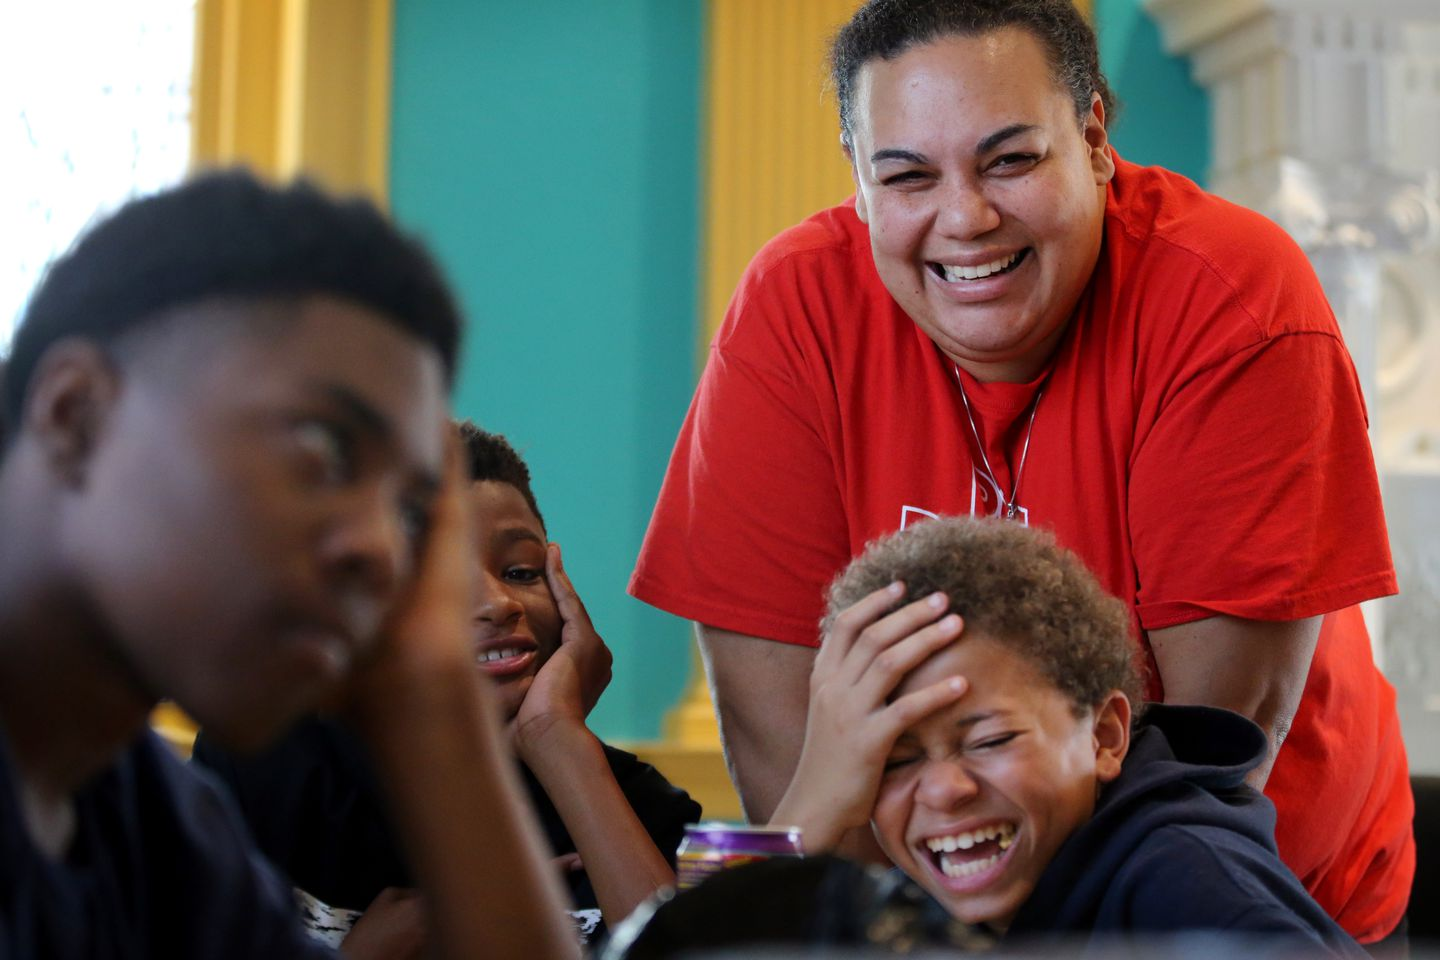 Carla Christopher worked with young people during a drop-in program at Union Evangelical Lutheran Church in York. Christopher also works as an equity coordinator at York County School of Technology.